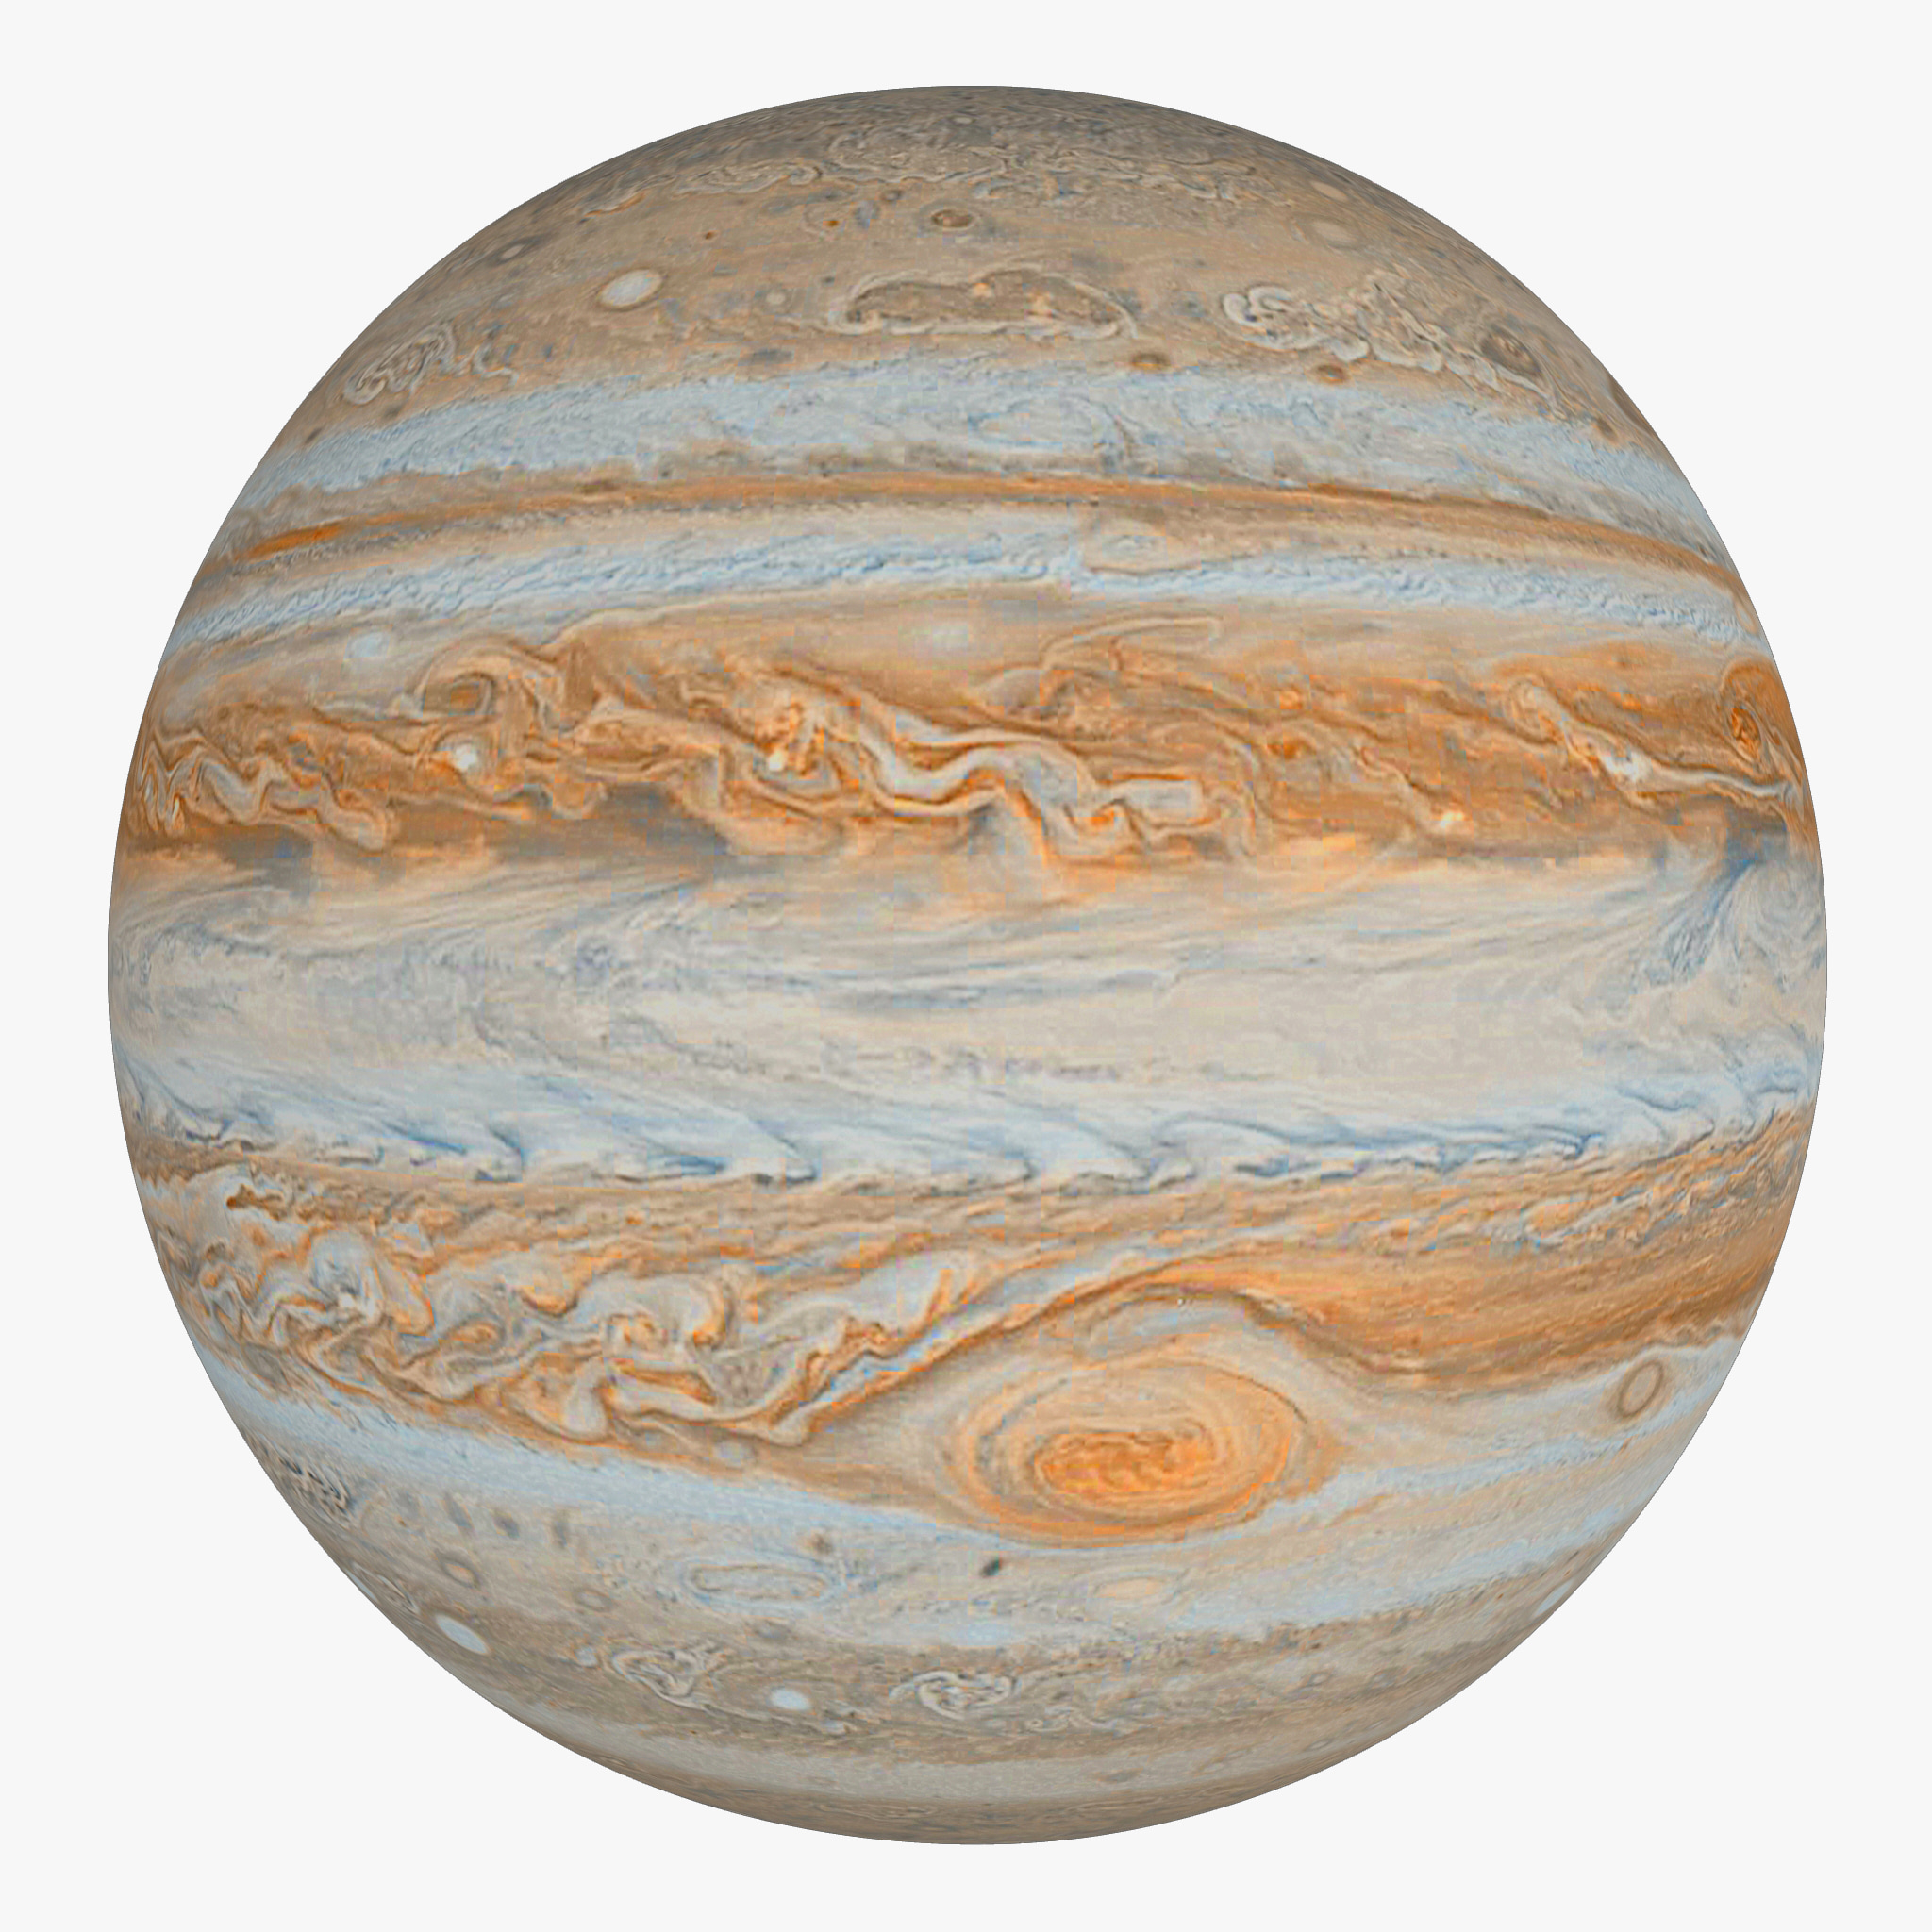 planet jupiter features - photo #34